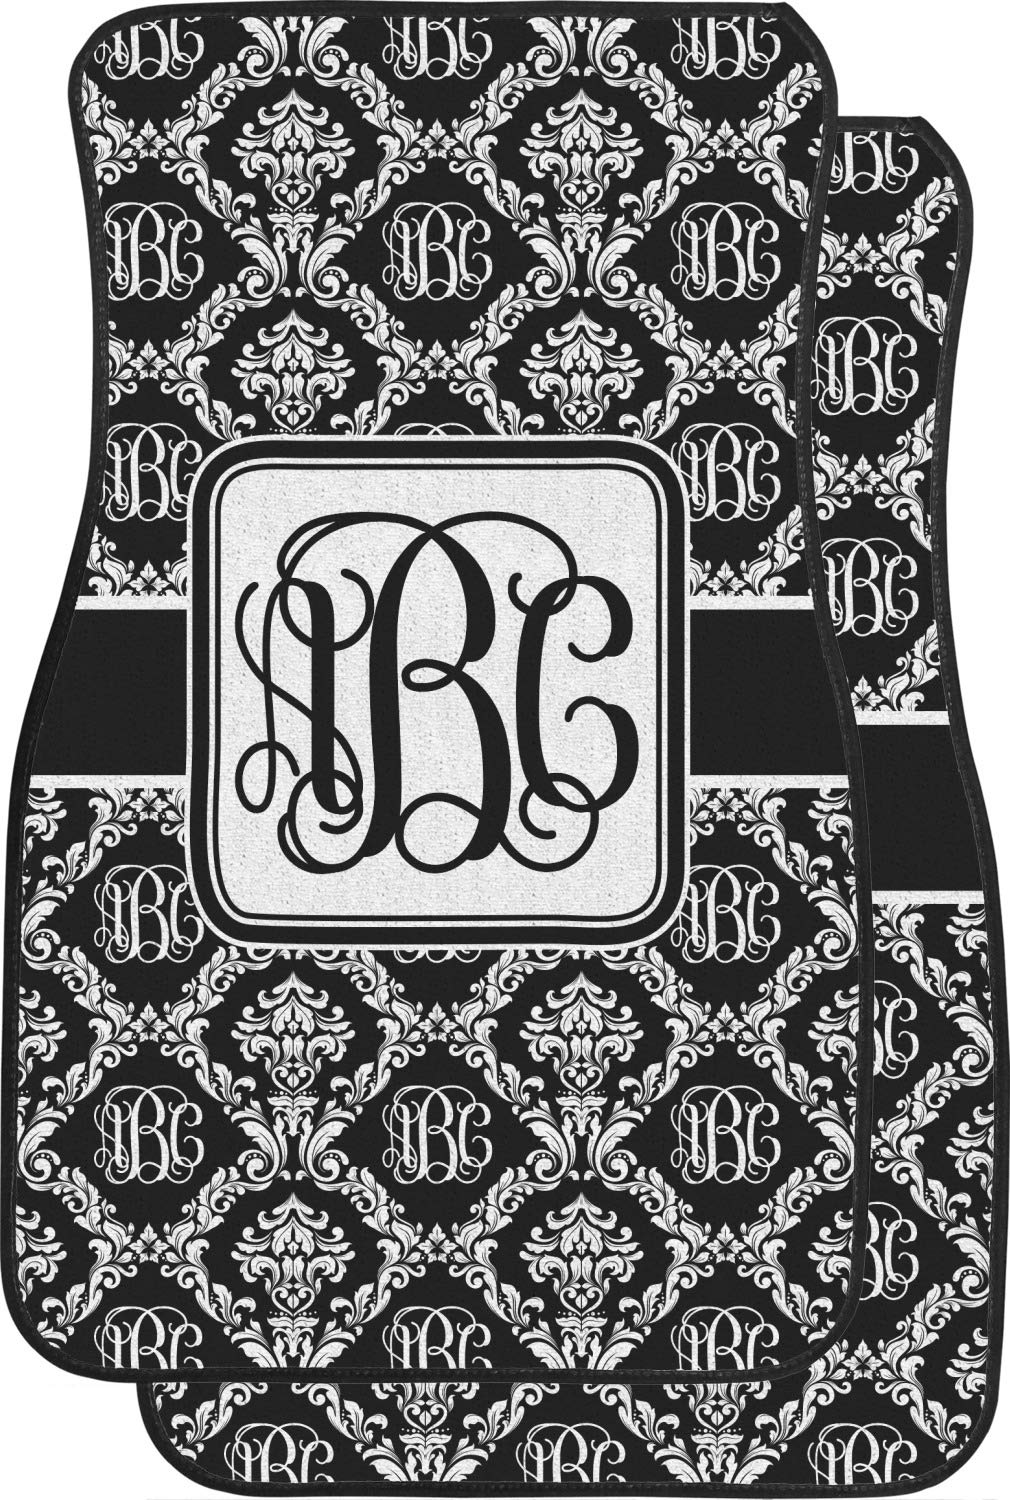 RNK Shops Monogrammed Damask Car Floor Mats (Front Seat) (Personalized)